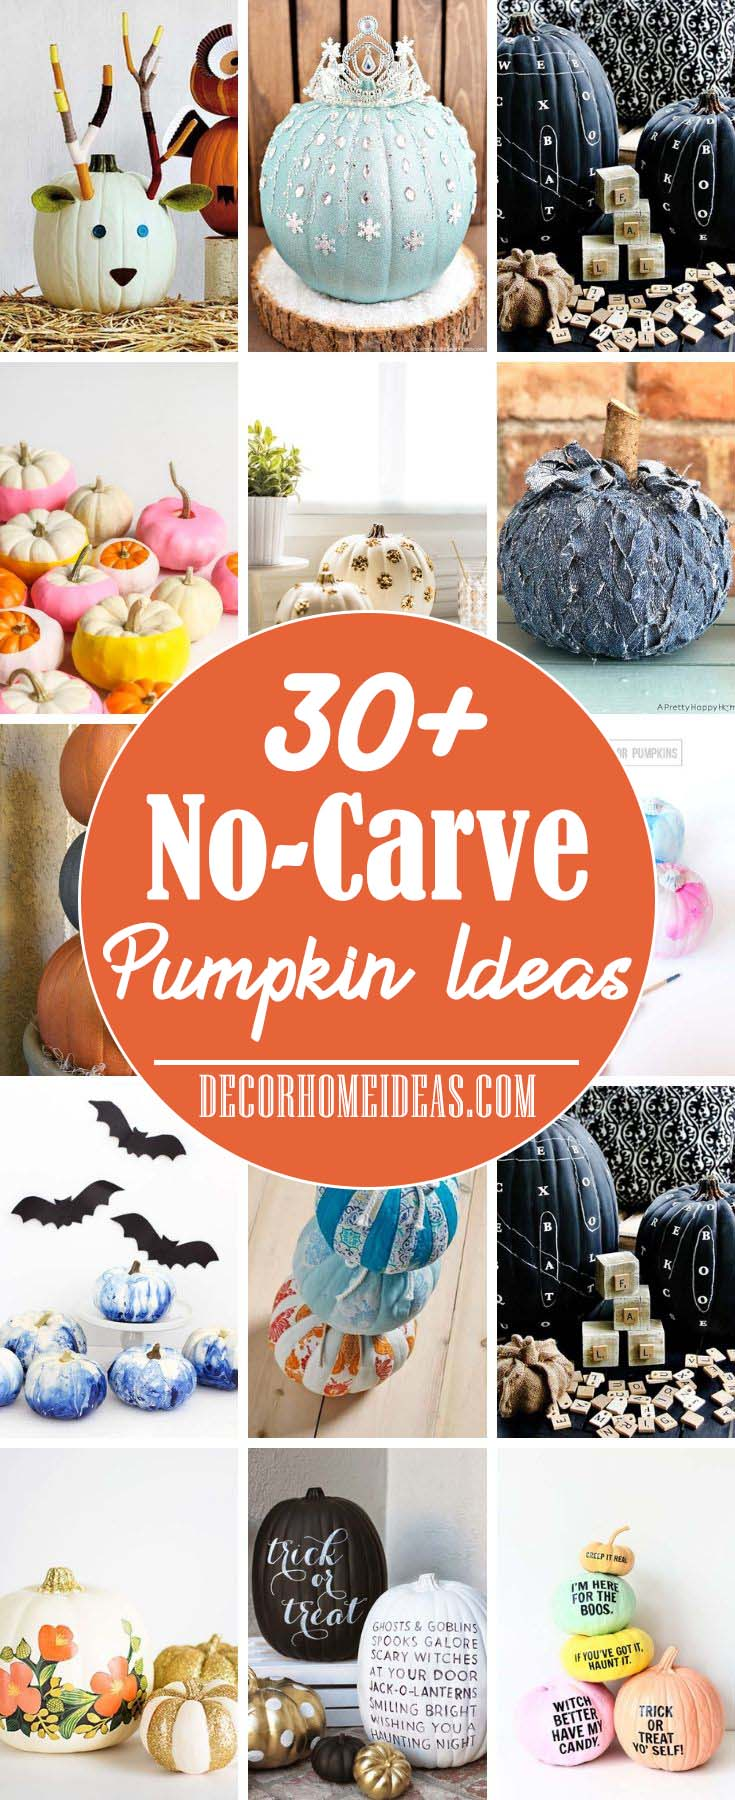 Amazing No-Carve Pumpkin Ideas #pumpkin #falldecor #decorhomeideas